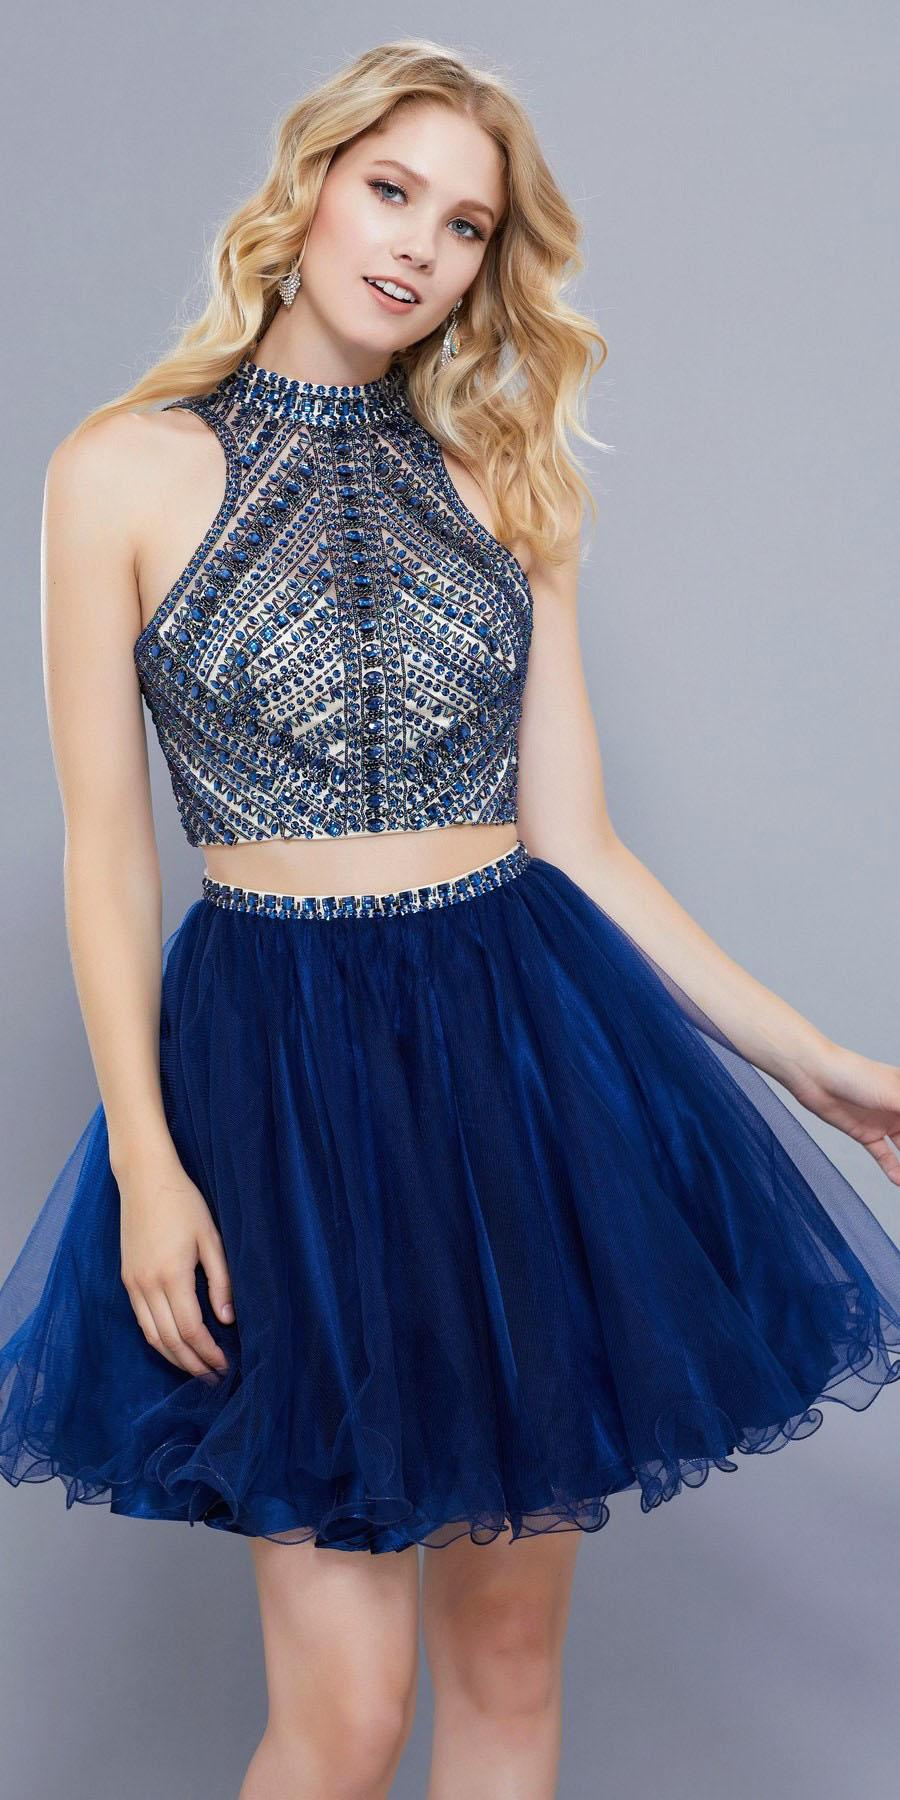 025cd2d69ef High Neckline Beaded Crop Top Two Piece Homecoming Short Dress Navy Blue.  Tap to expand